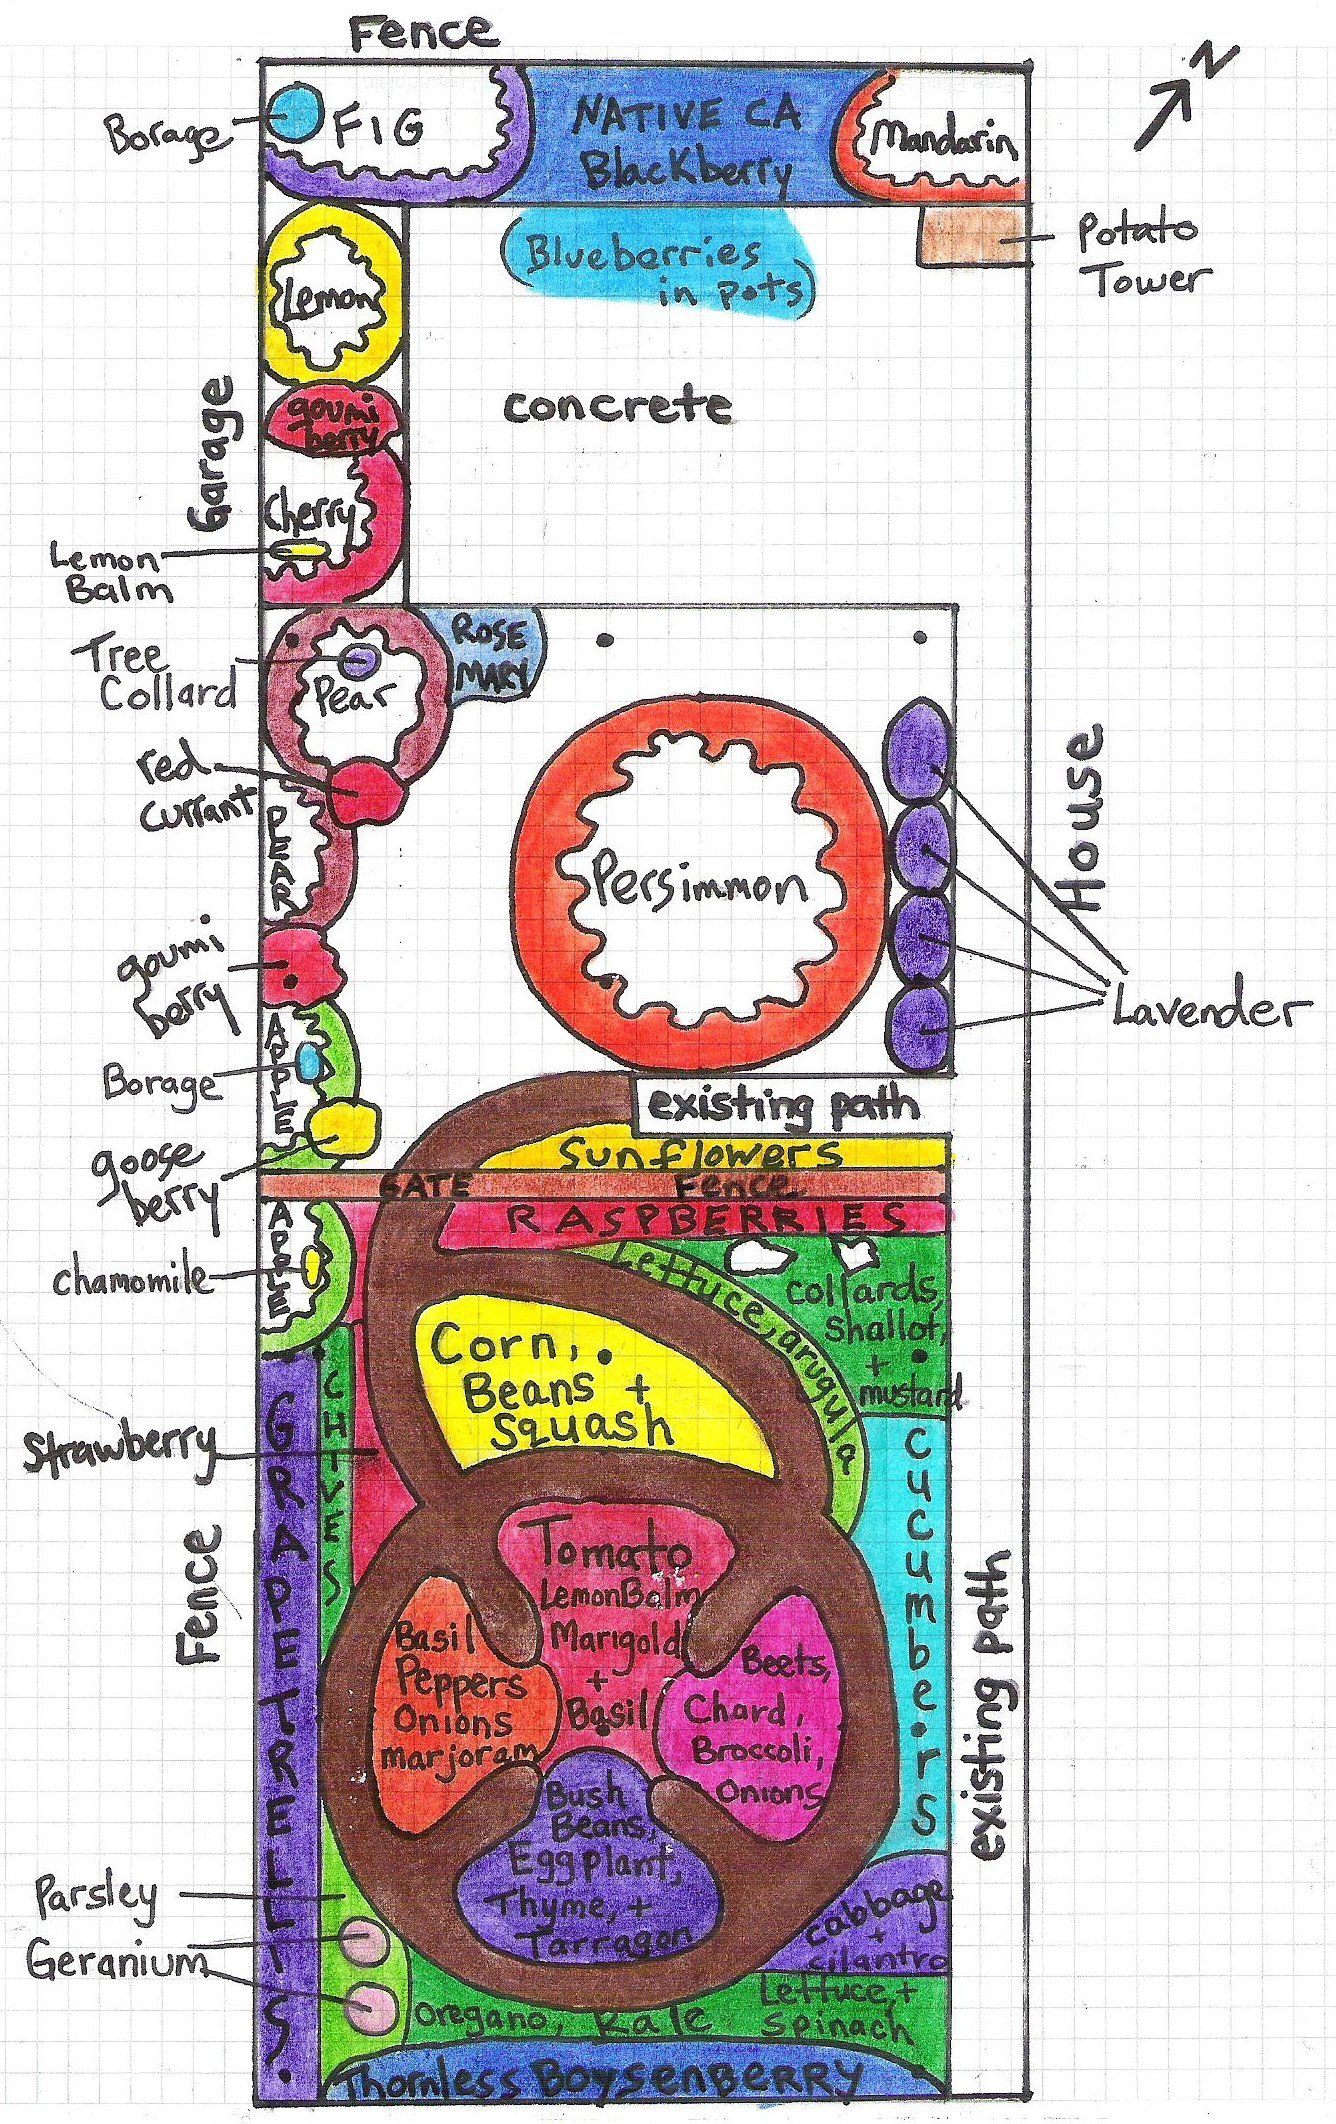 Permaculture Design Examples Google Search: An Urban Permaculture Food Forest Design Friendly For A